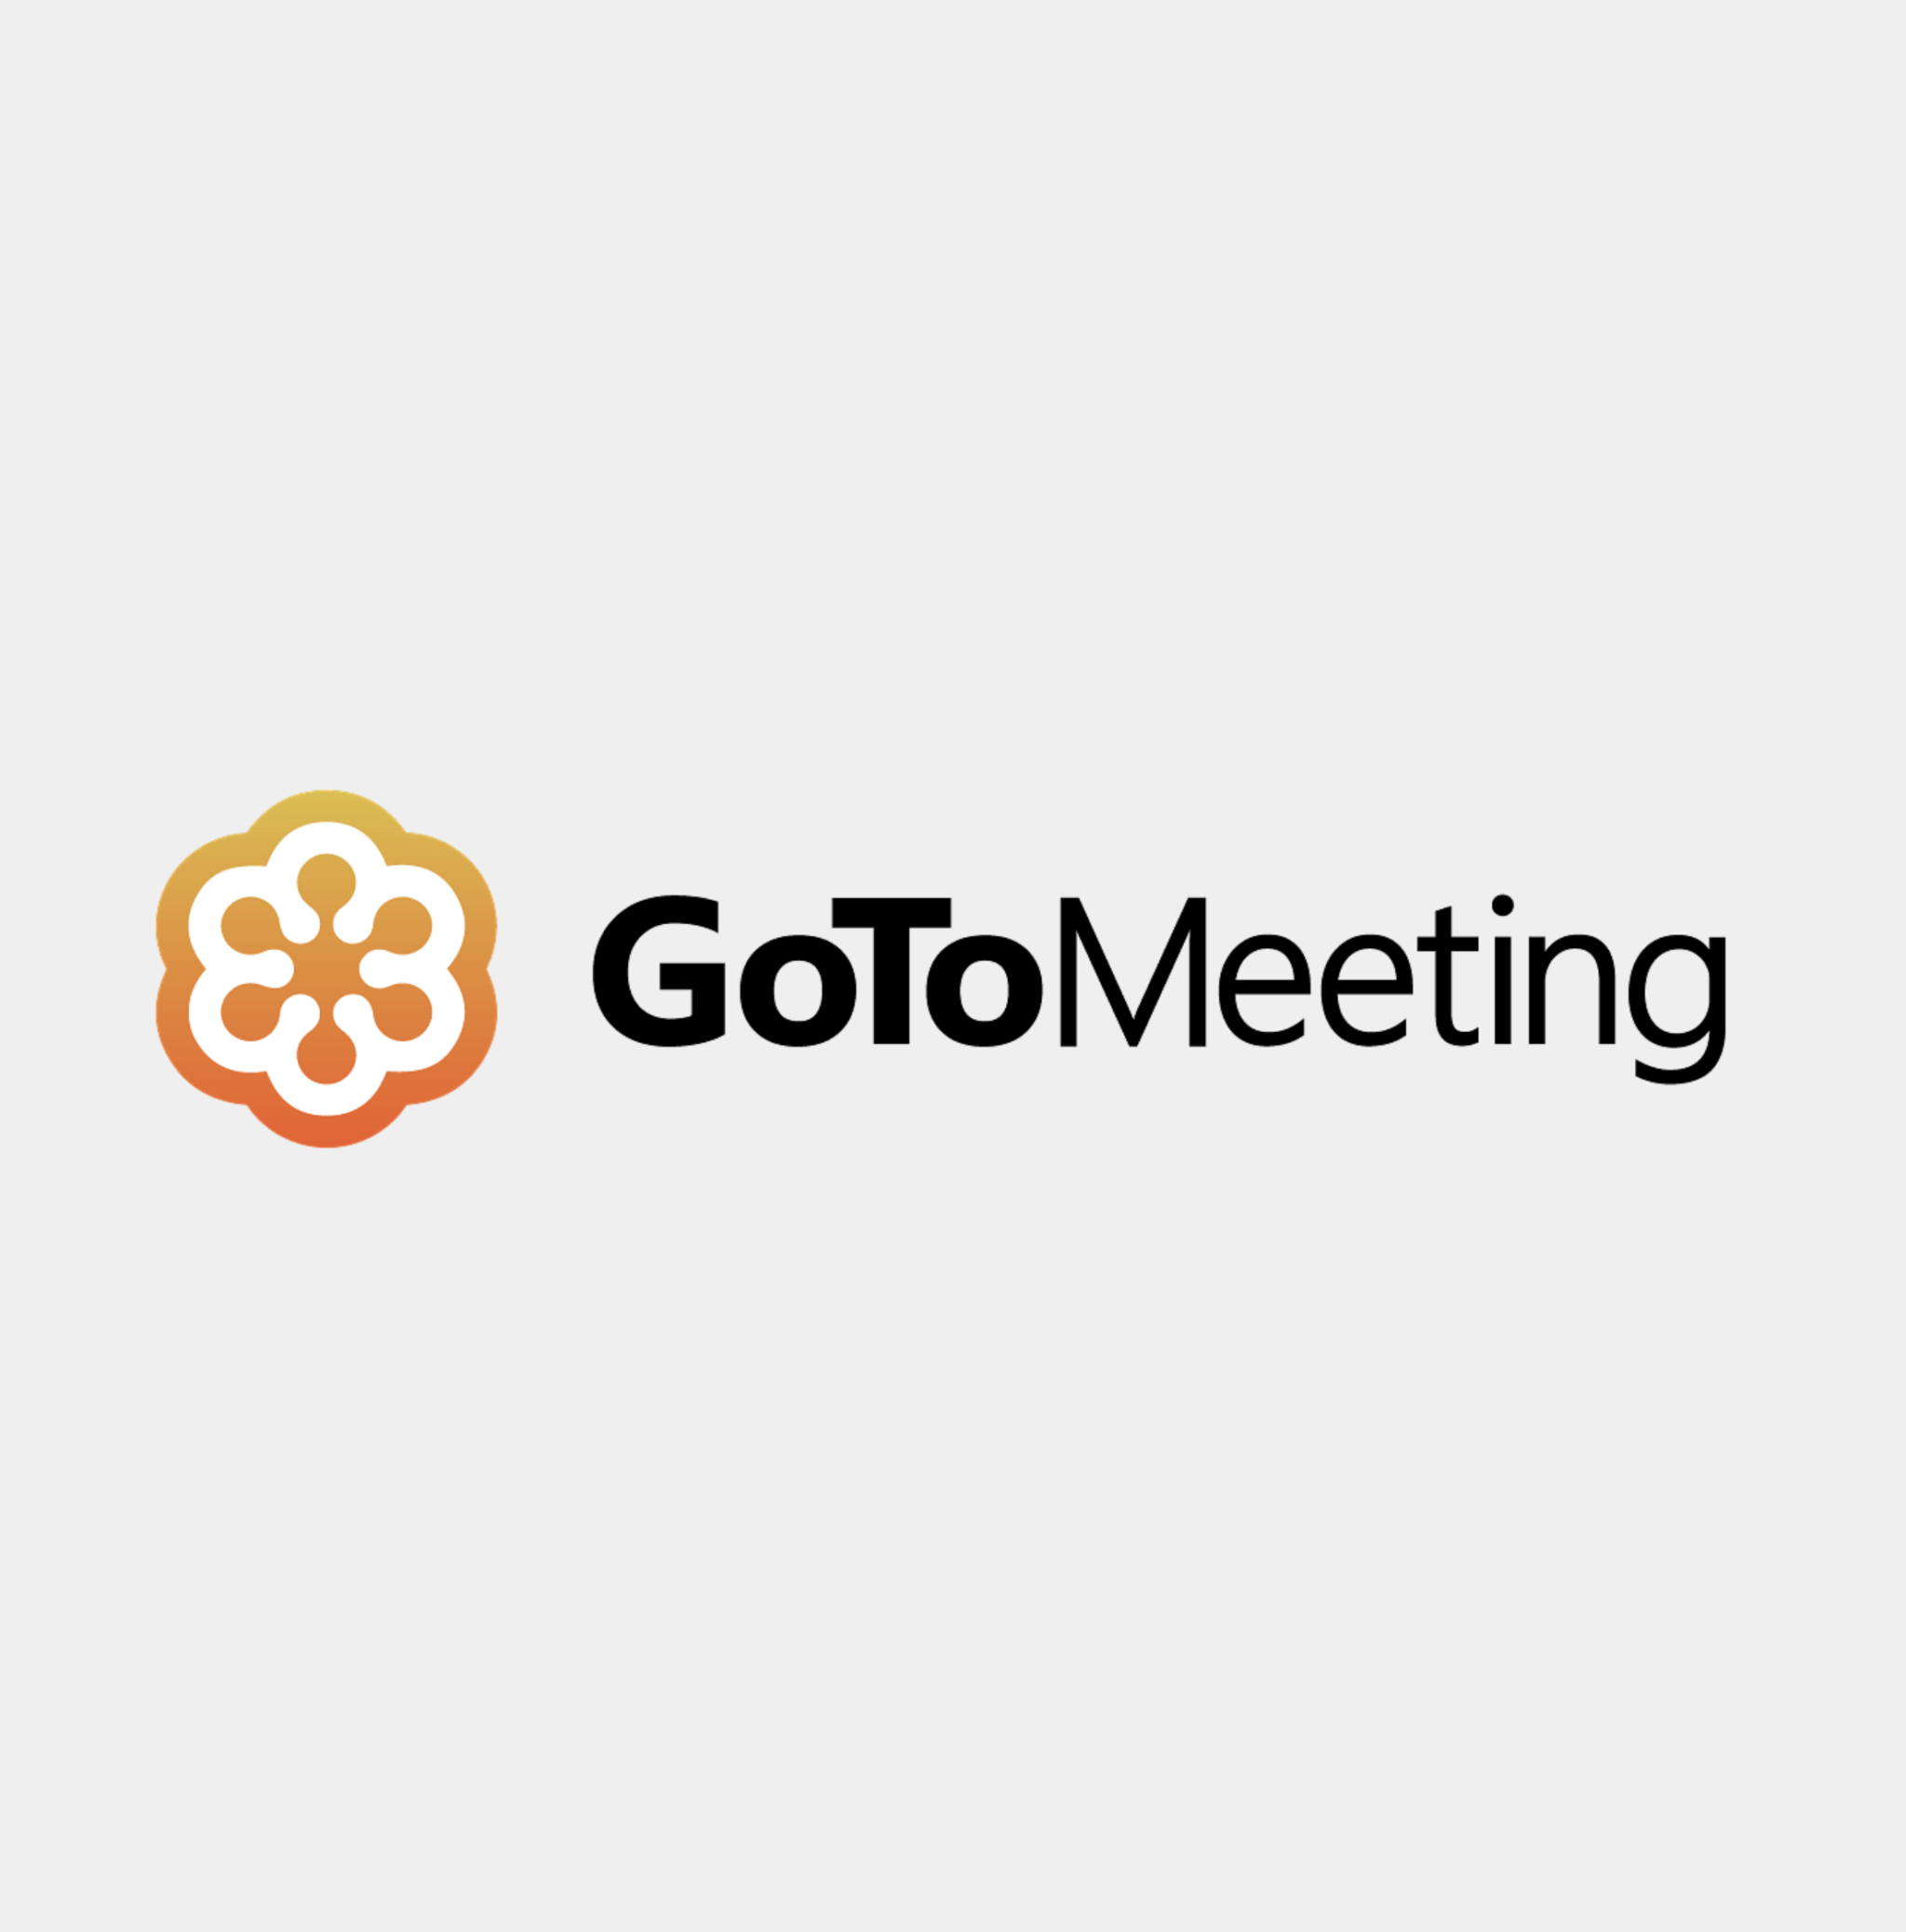 The logo for GoToMeeting.